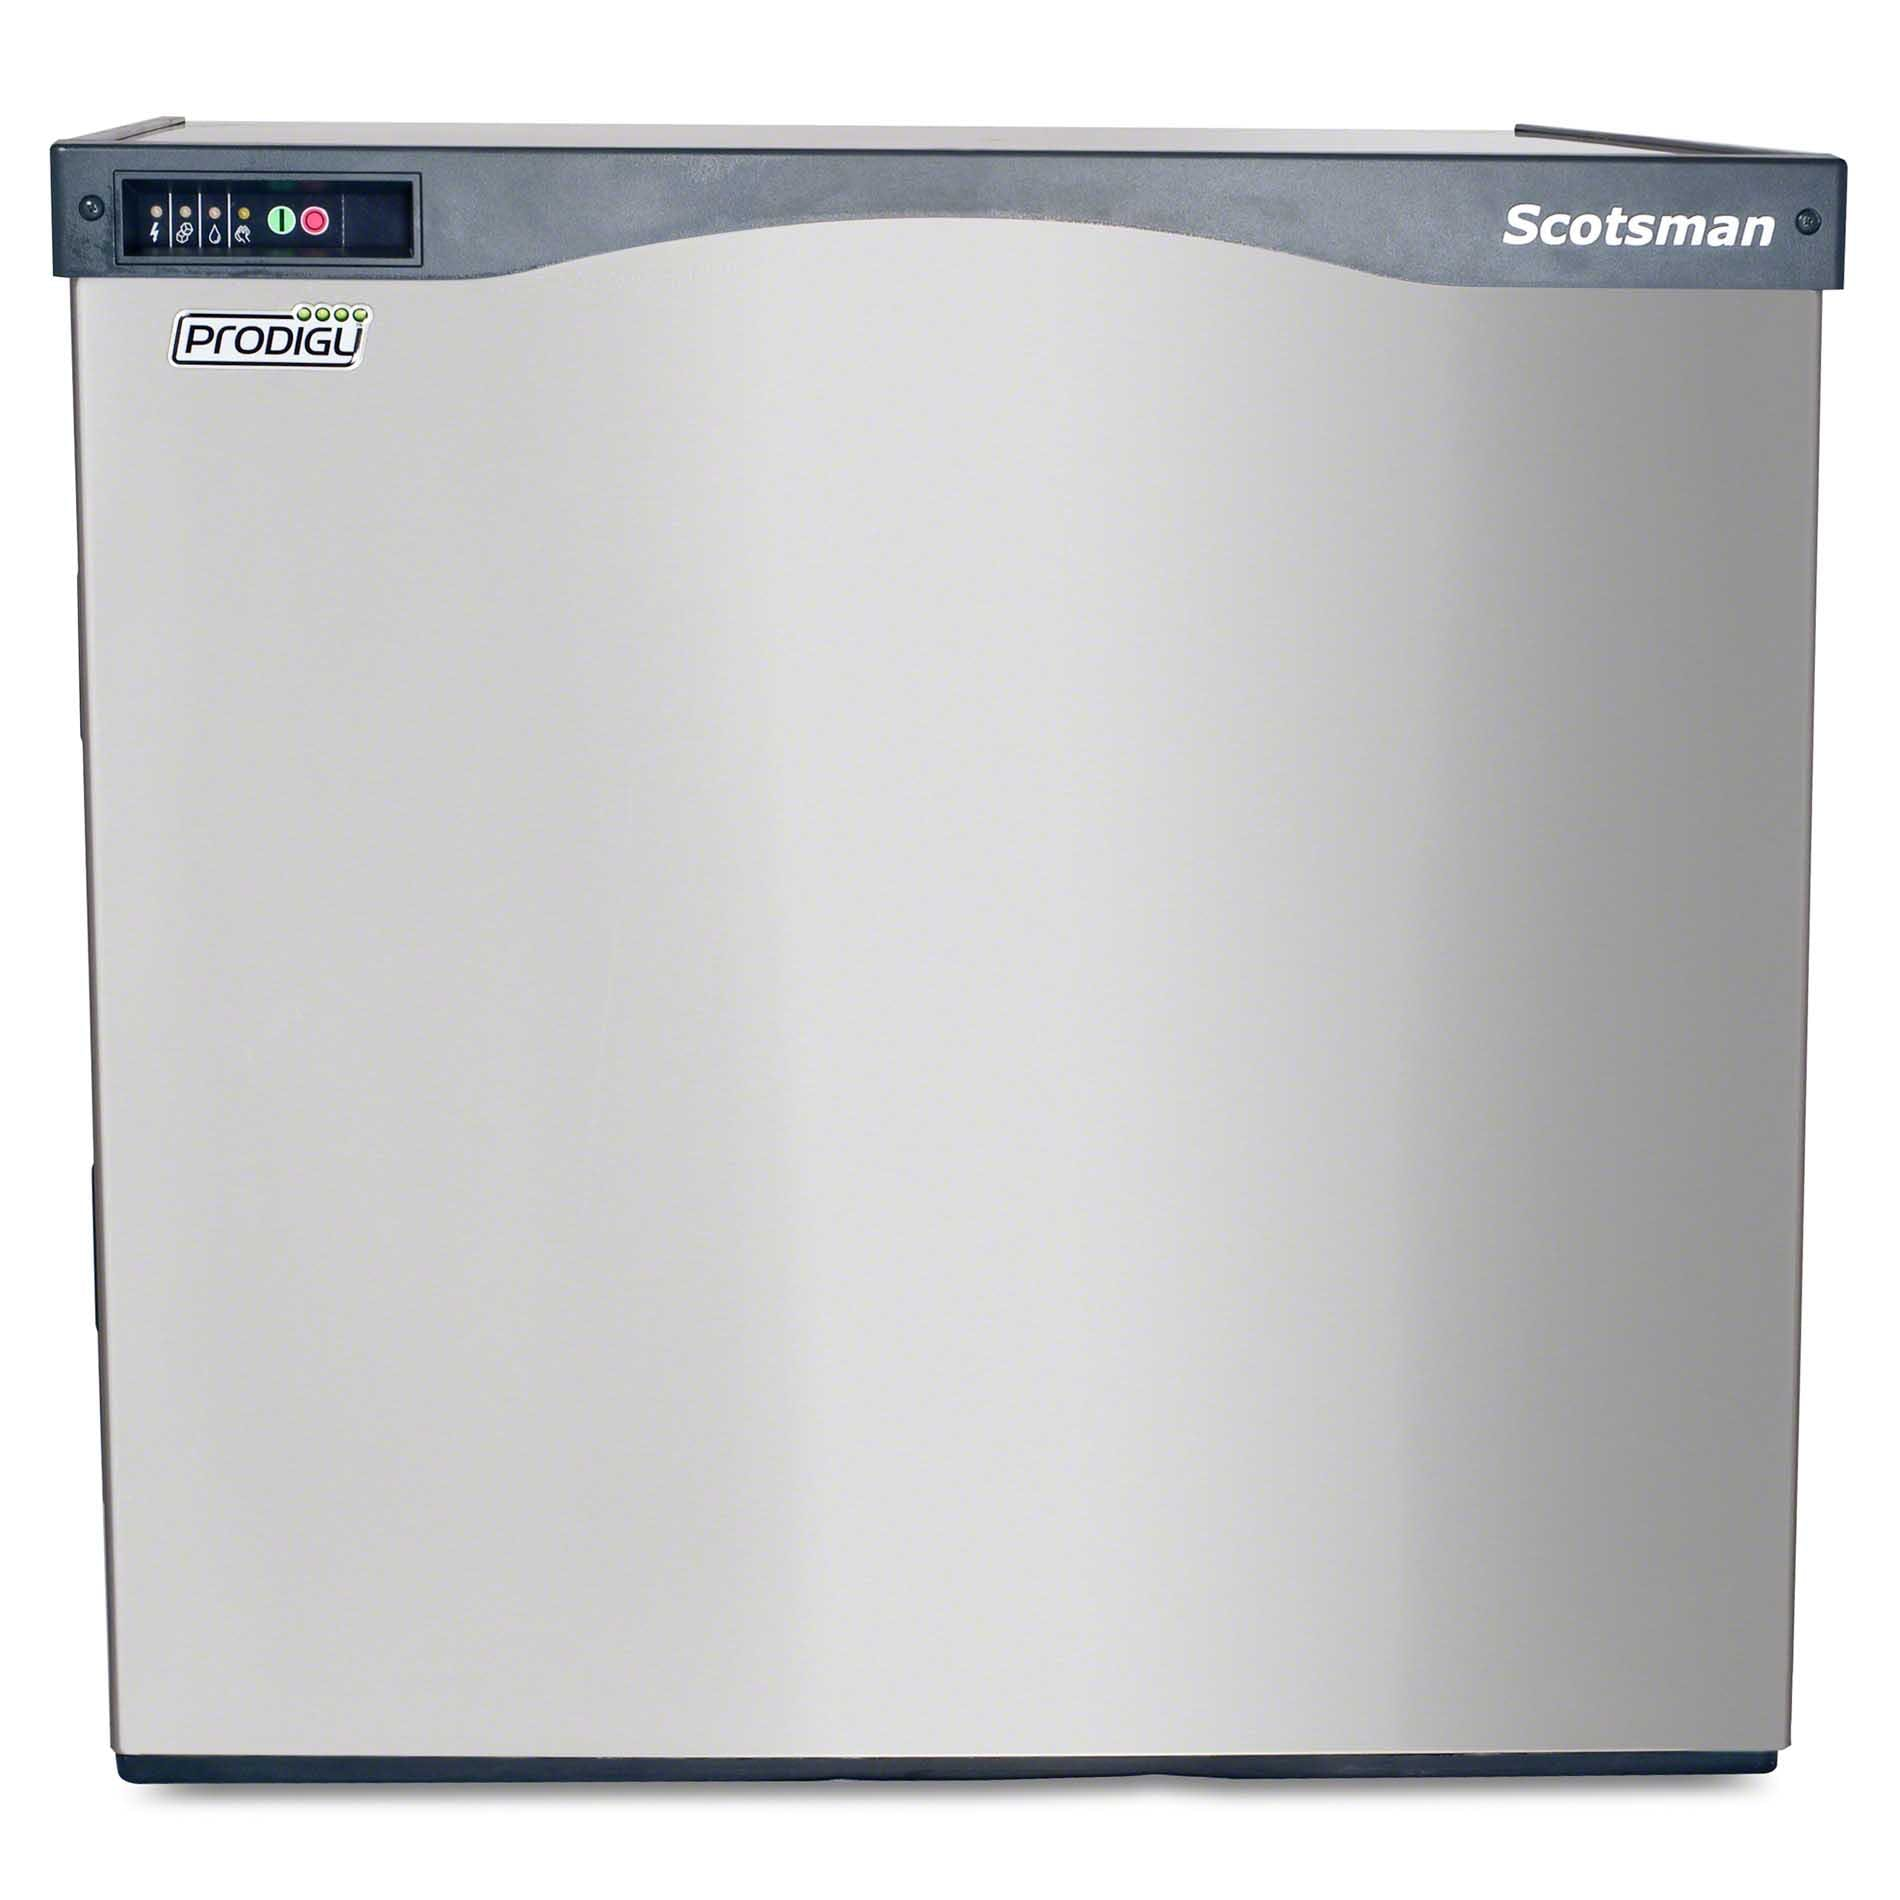 Scotsman - C0830SR-32A 870 lb Half Size Cube Ice Machine - Prodigy Series - sold by Food Service Warehouse